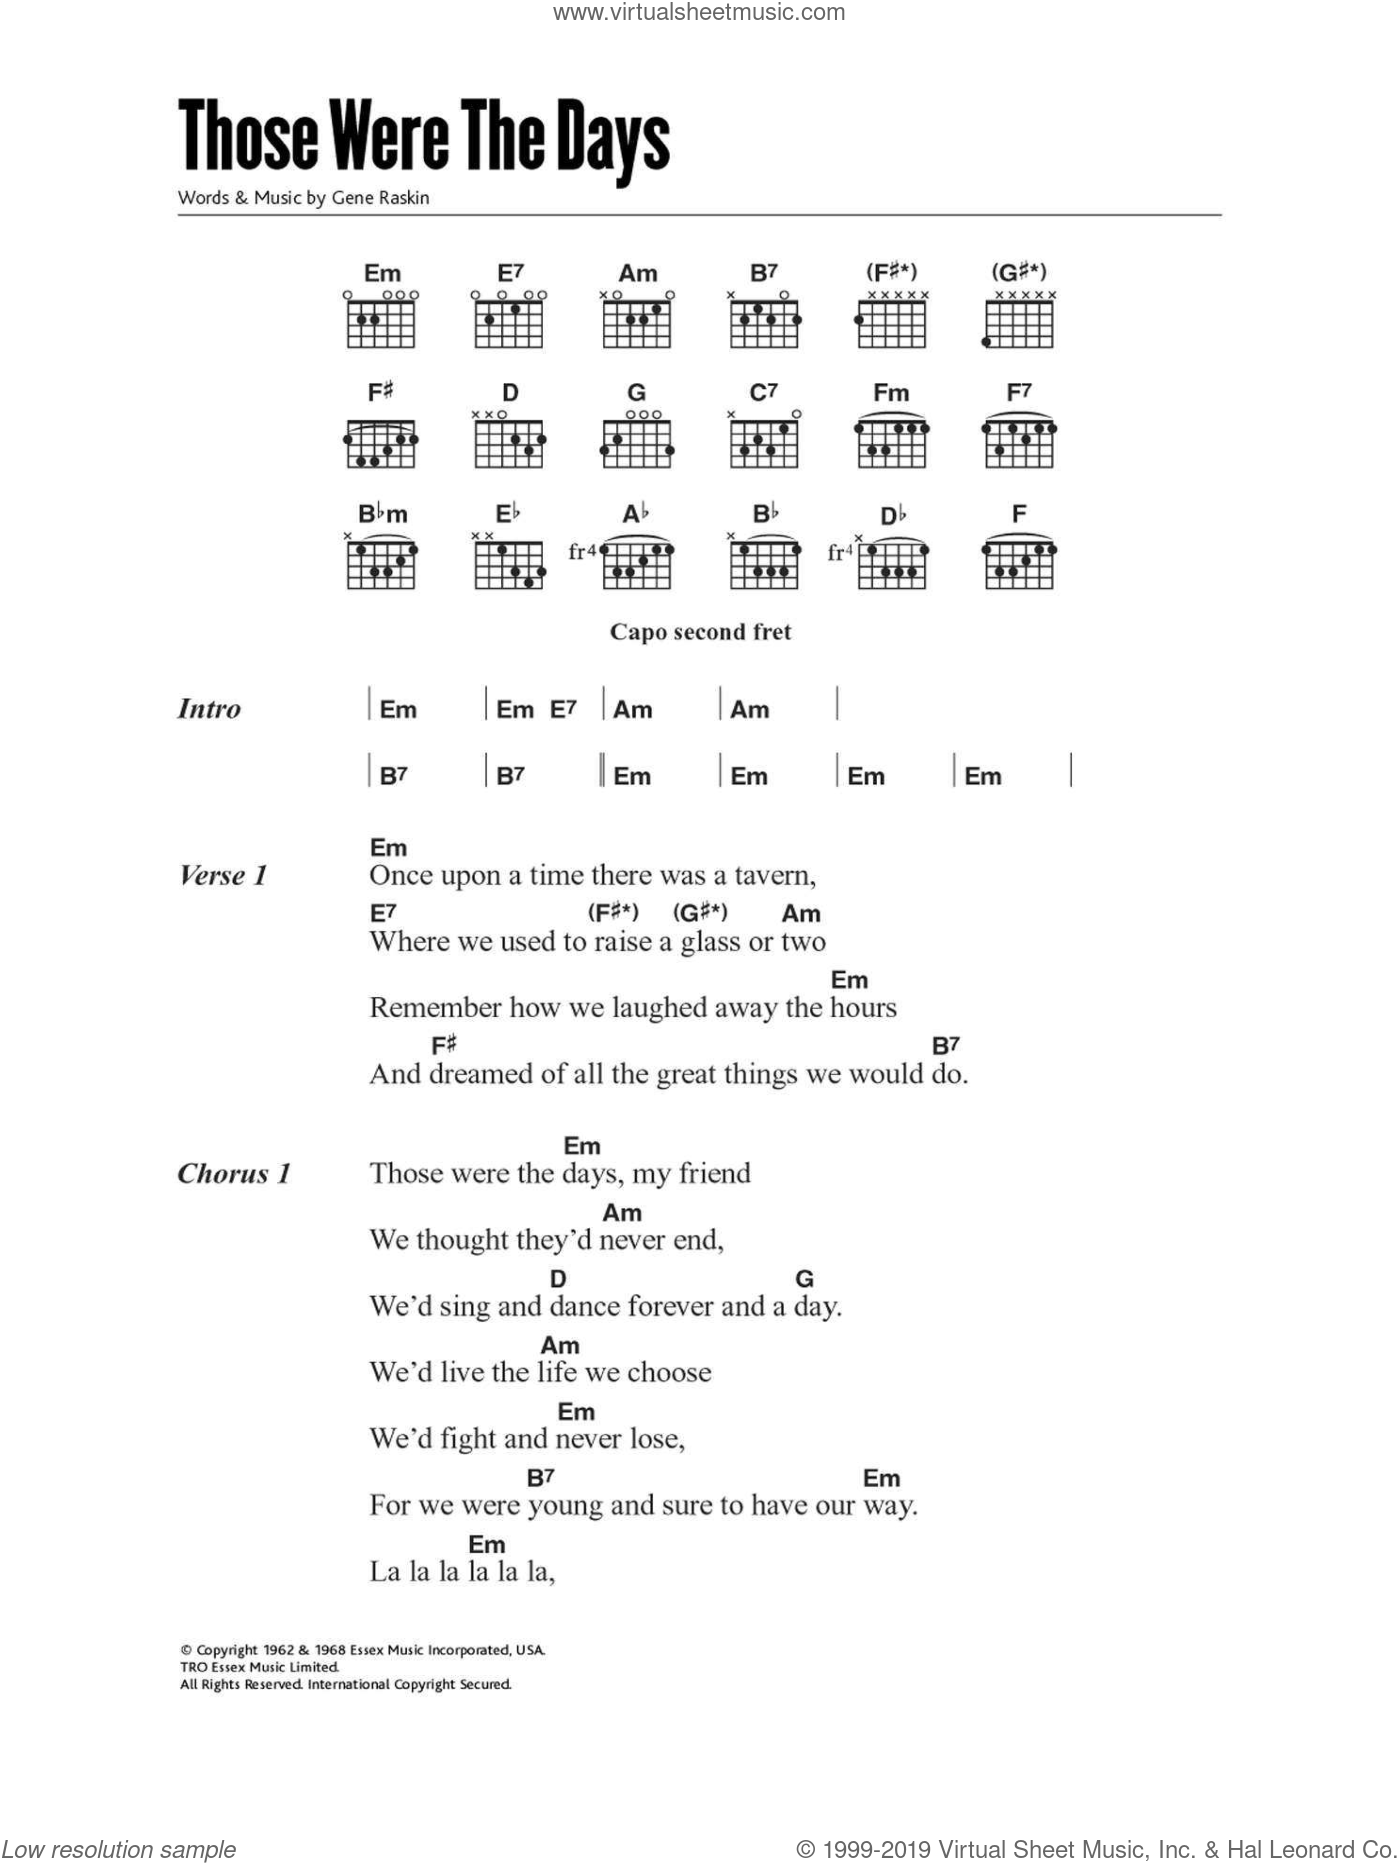 Those Were The Days sheet music for guitar (chords) by Gene Raskin